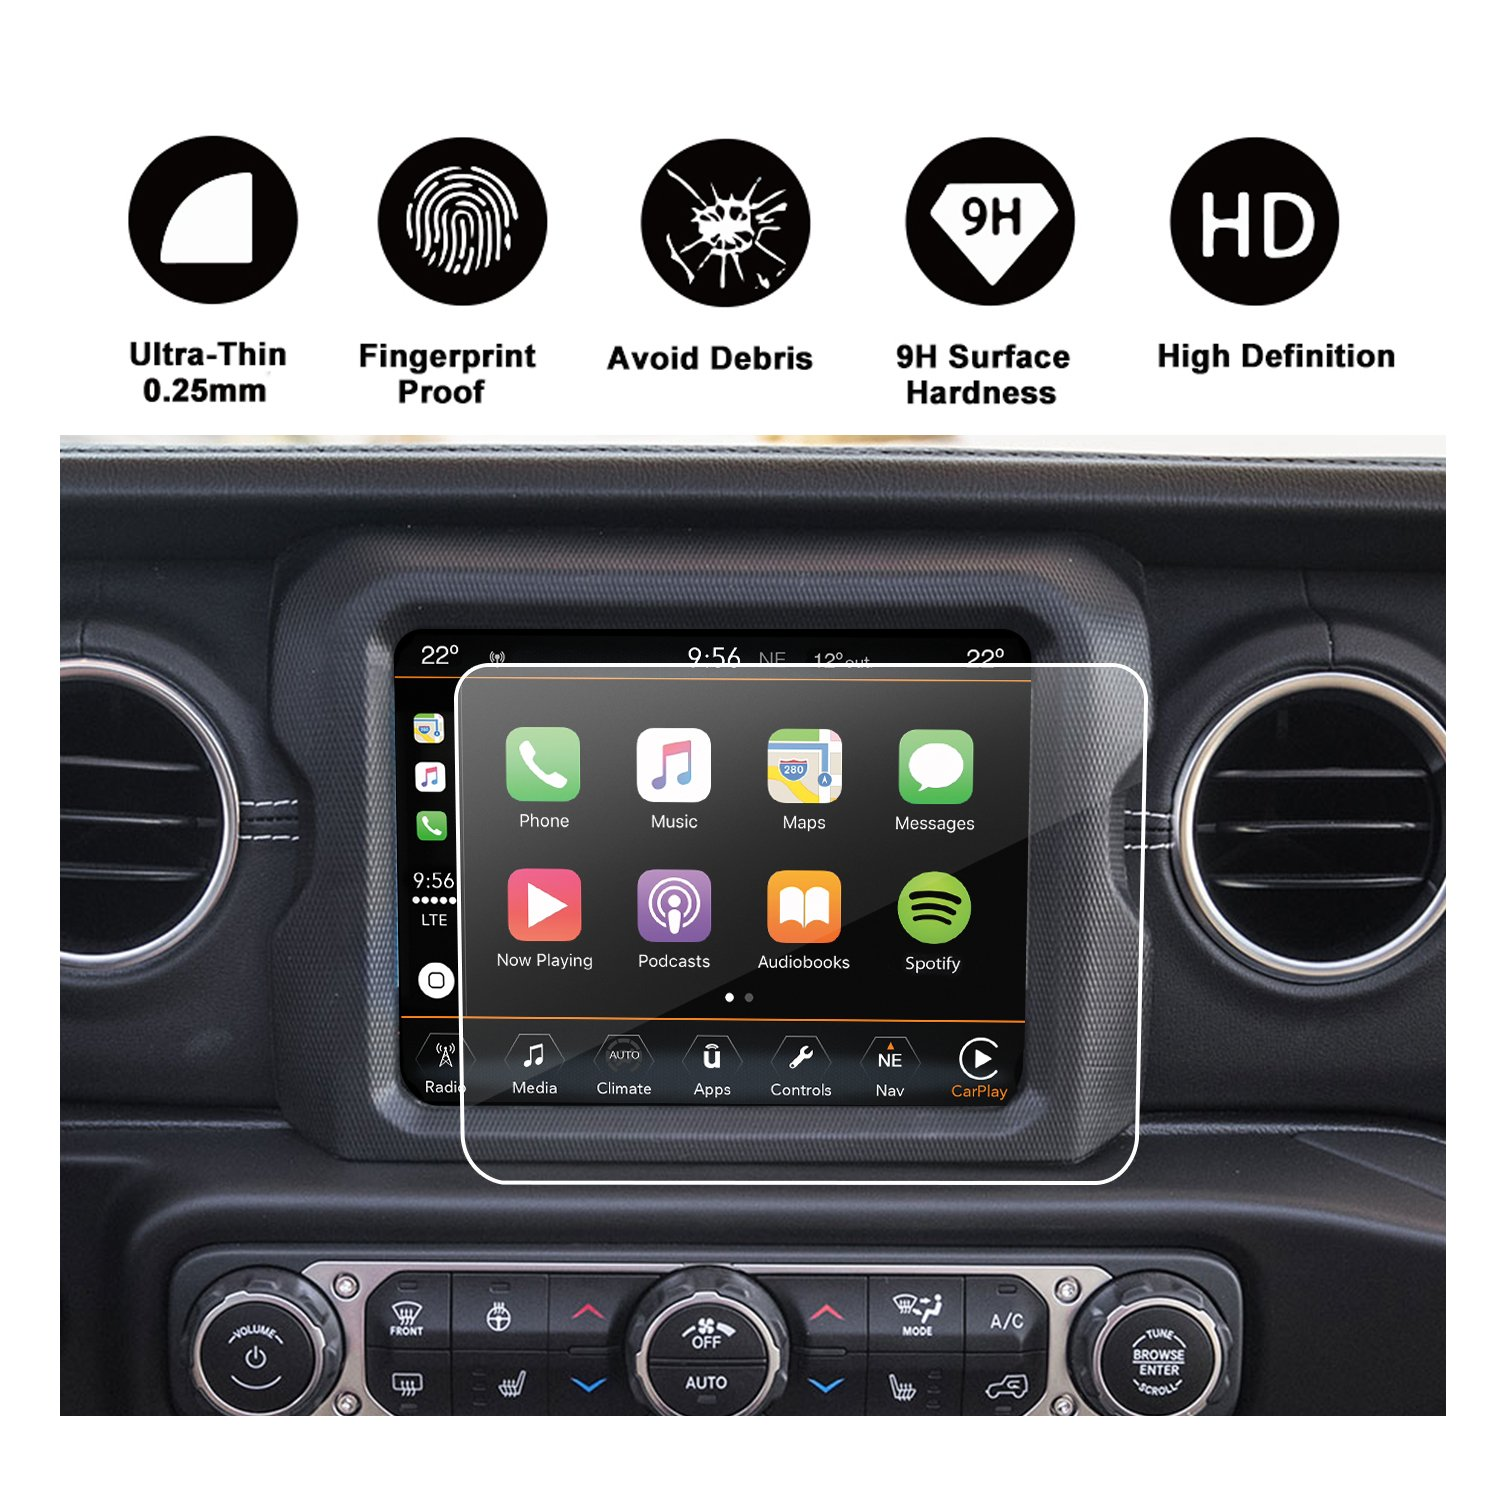 2018 Jeep Wrangler JL Uconnect Touch Screen Protector, R RUIYA HD Clear Tempered Glass Protective Film Against Scratch High Clarity (7-Inch) 2018 JW7